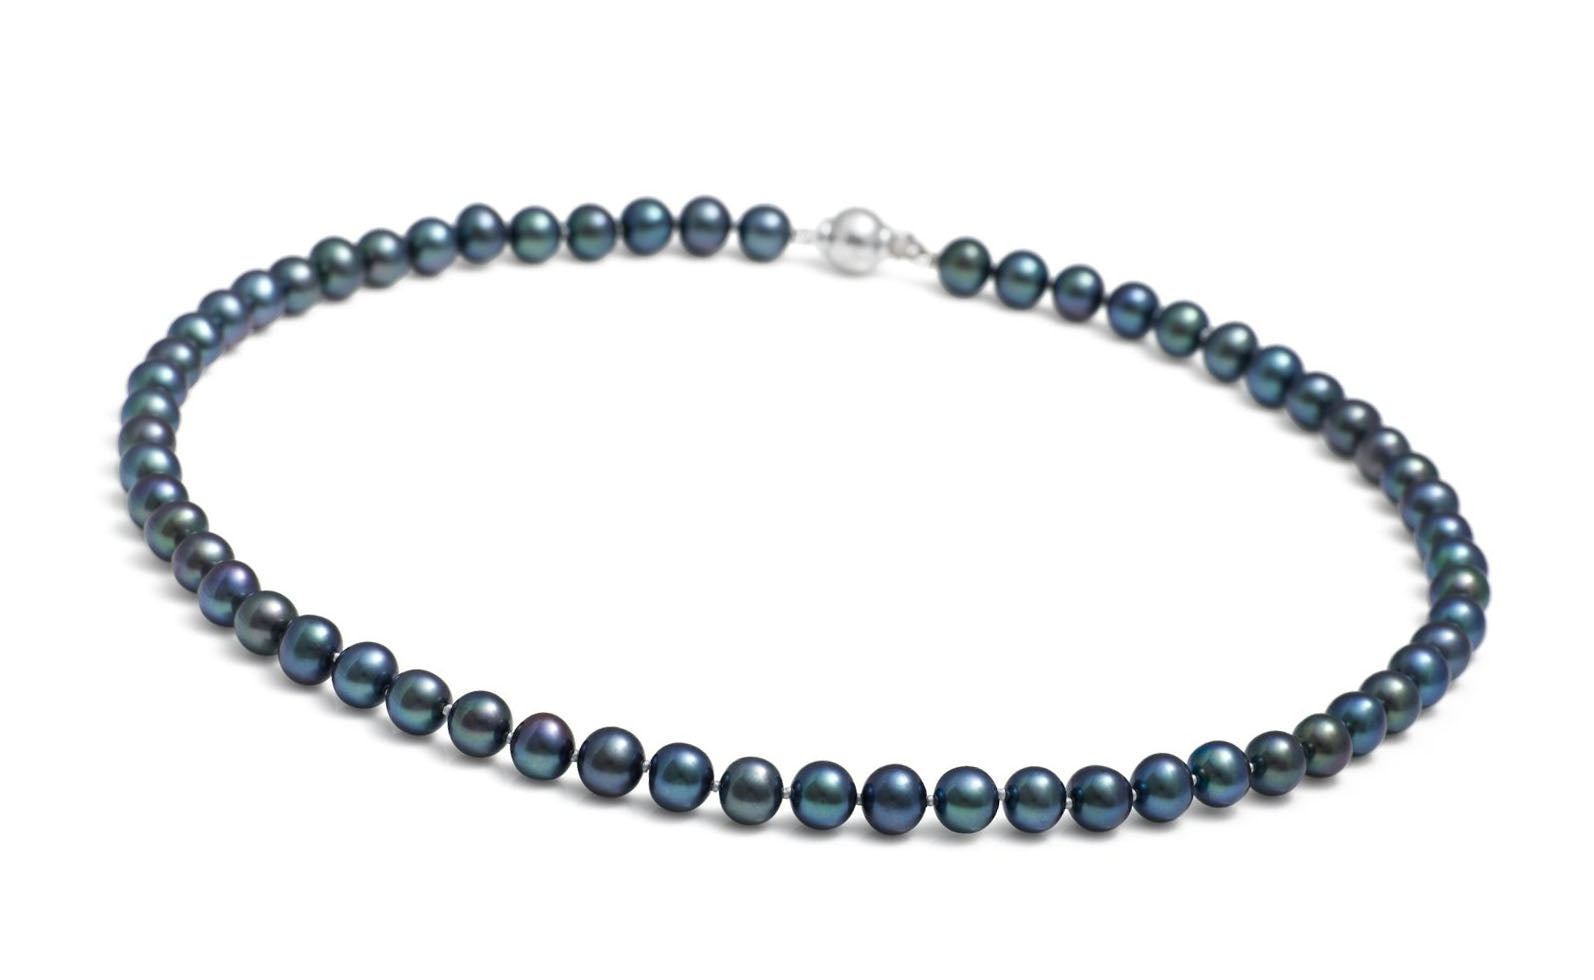 StunningBoutique Ellena Freshwater Pearls 9-10 mm 18 inches Black Pearls Necklace *Presented in gift Box* Asj2PUnR4n